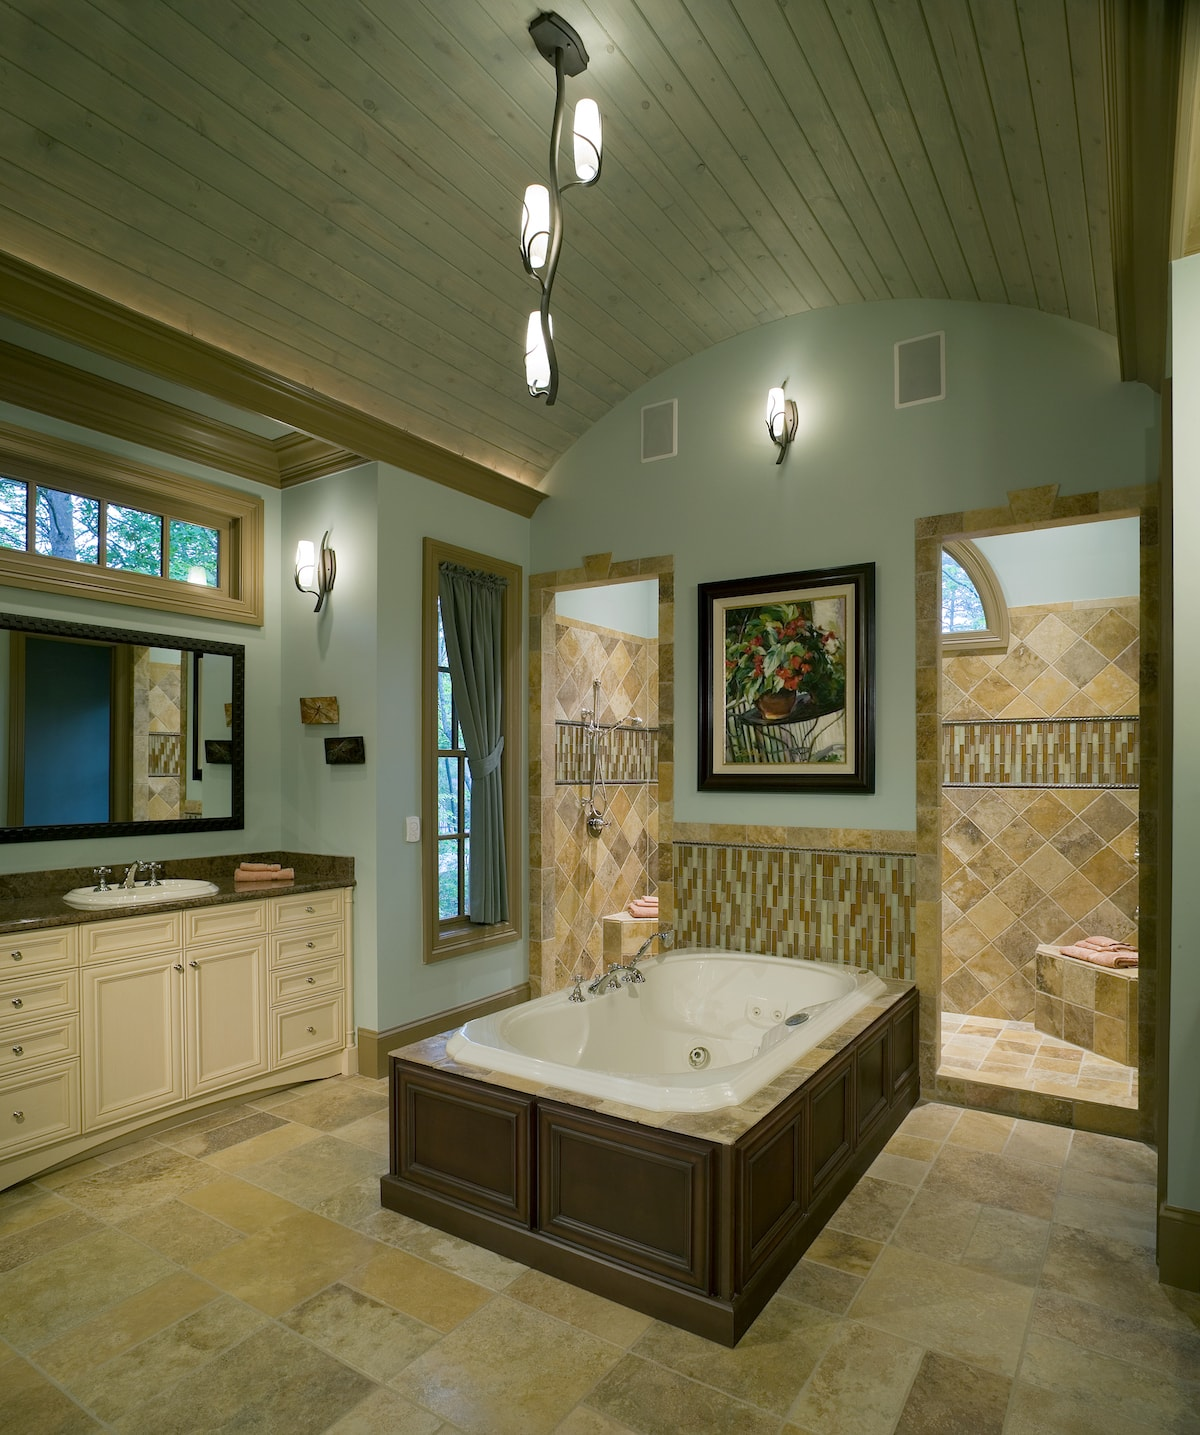 Arts And Crafts Home Plan 3 Bedrms 2 5 Baths 2587 Sq